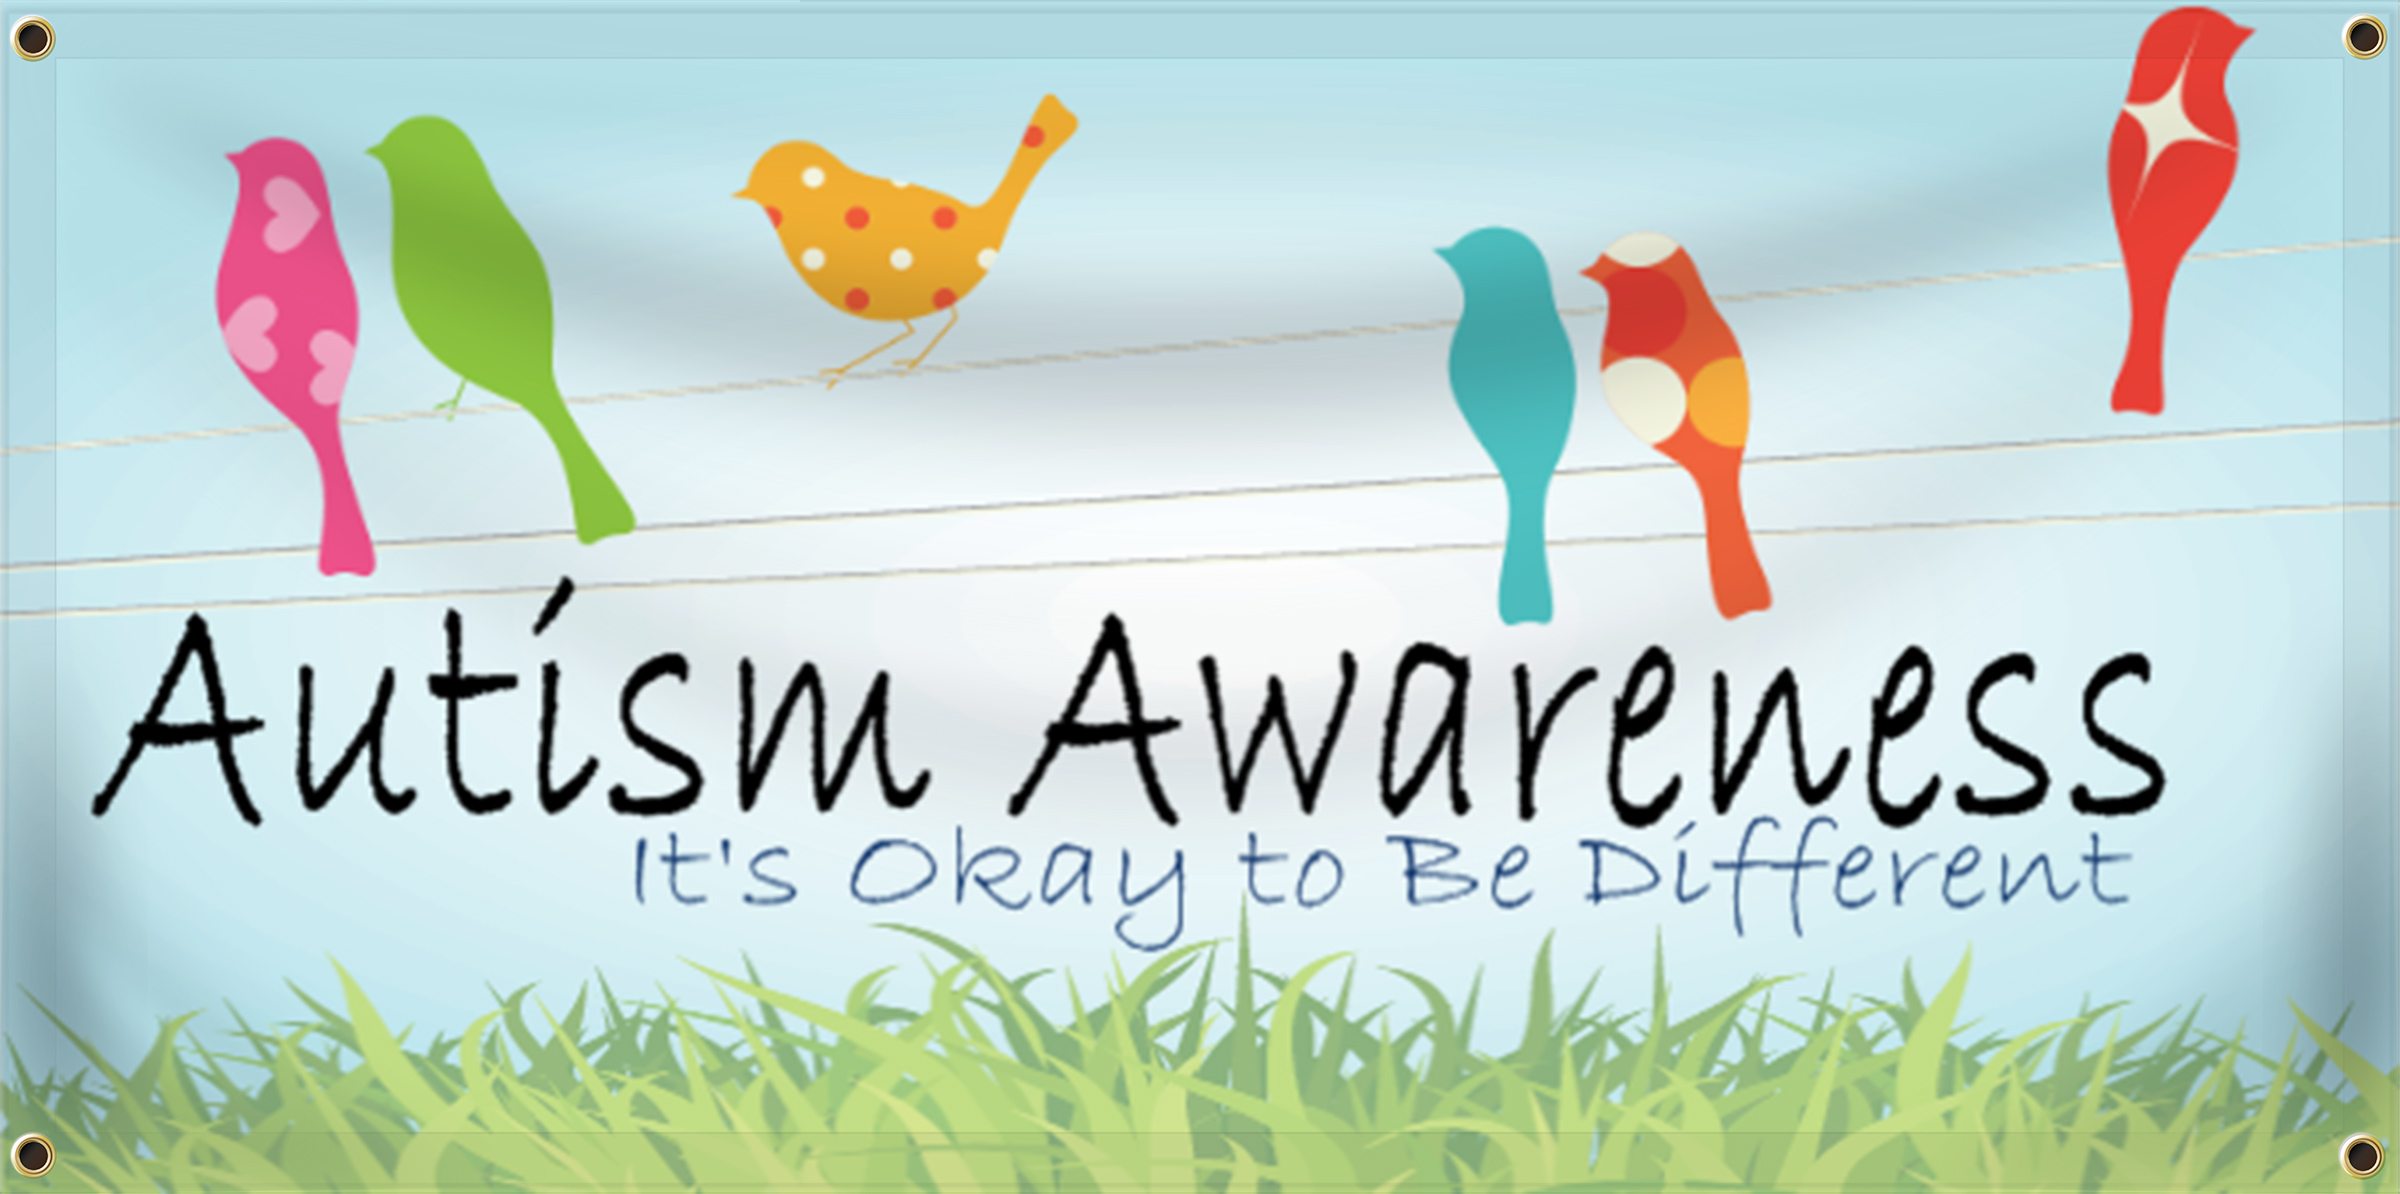 Autism Awareness Banner Idea | LawnSigns.com